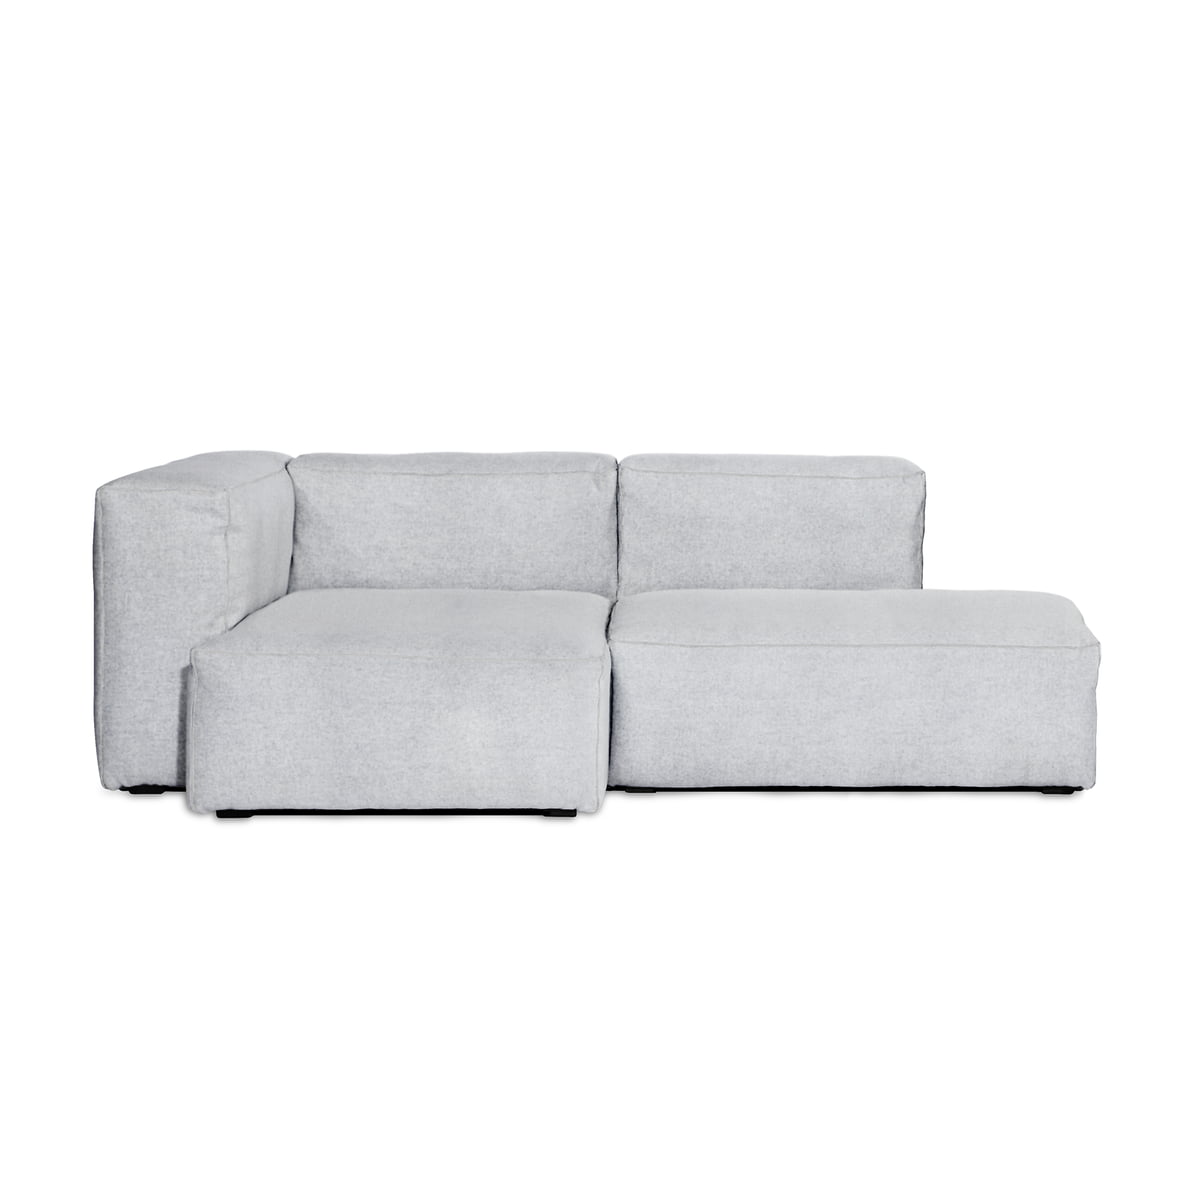 hay mags soft sofa 2 5 sitzer kombination 3 s8262 s9302 hellgrau steelcut 2 120. Black Bedroom Furniture Sets. Home Design Ideas